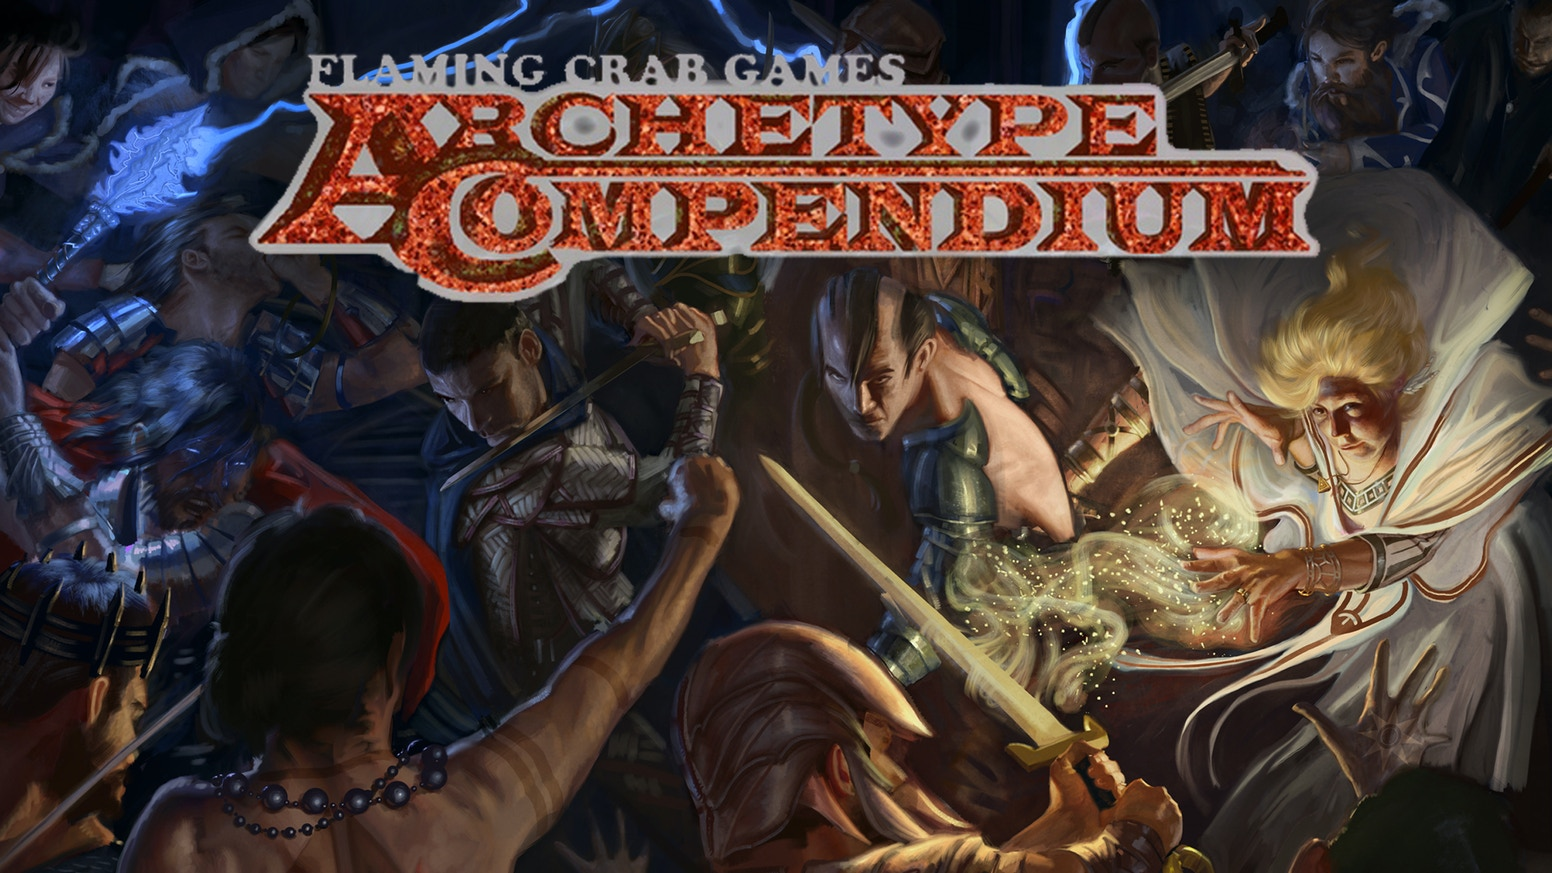 Flaming Crab Games Archetype Compendium for Pathfinder RPG by Alex